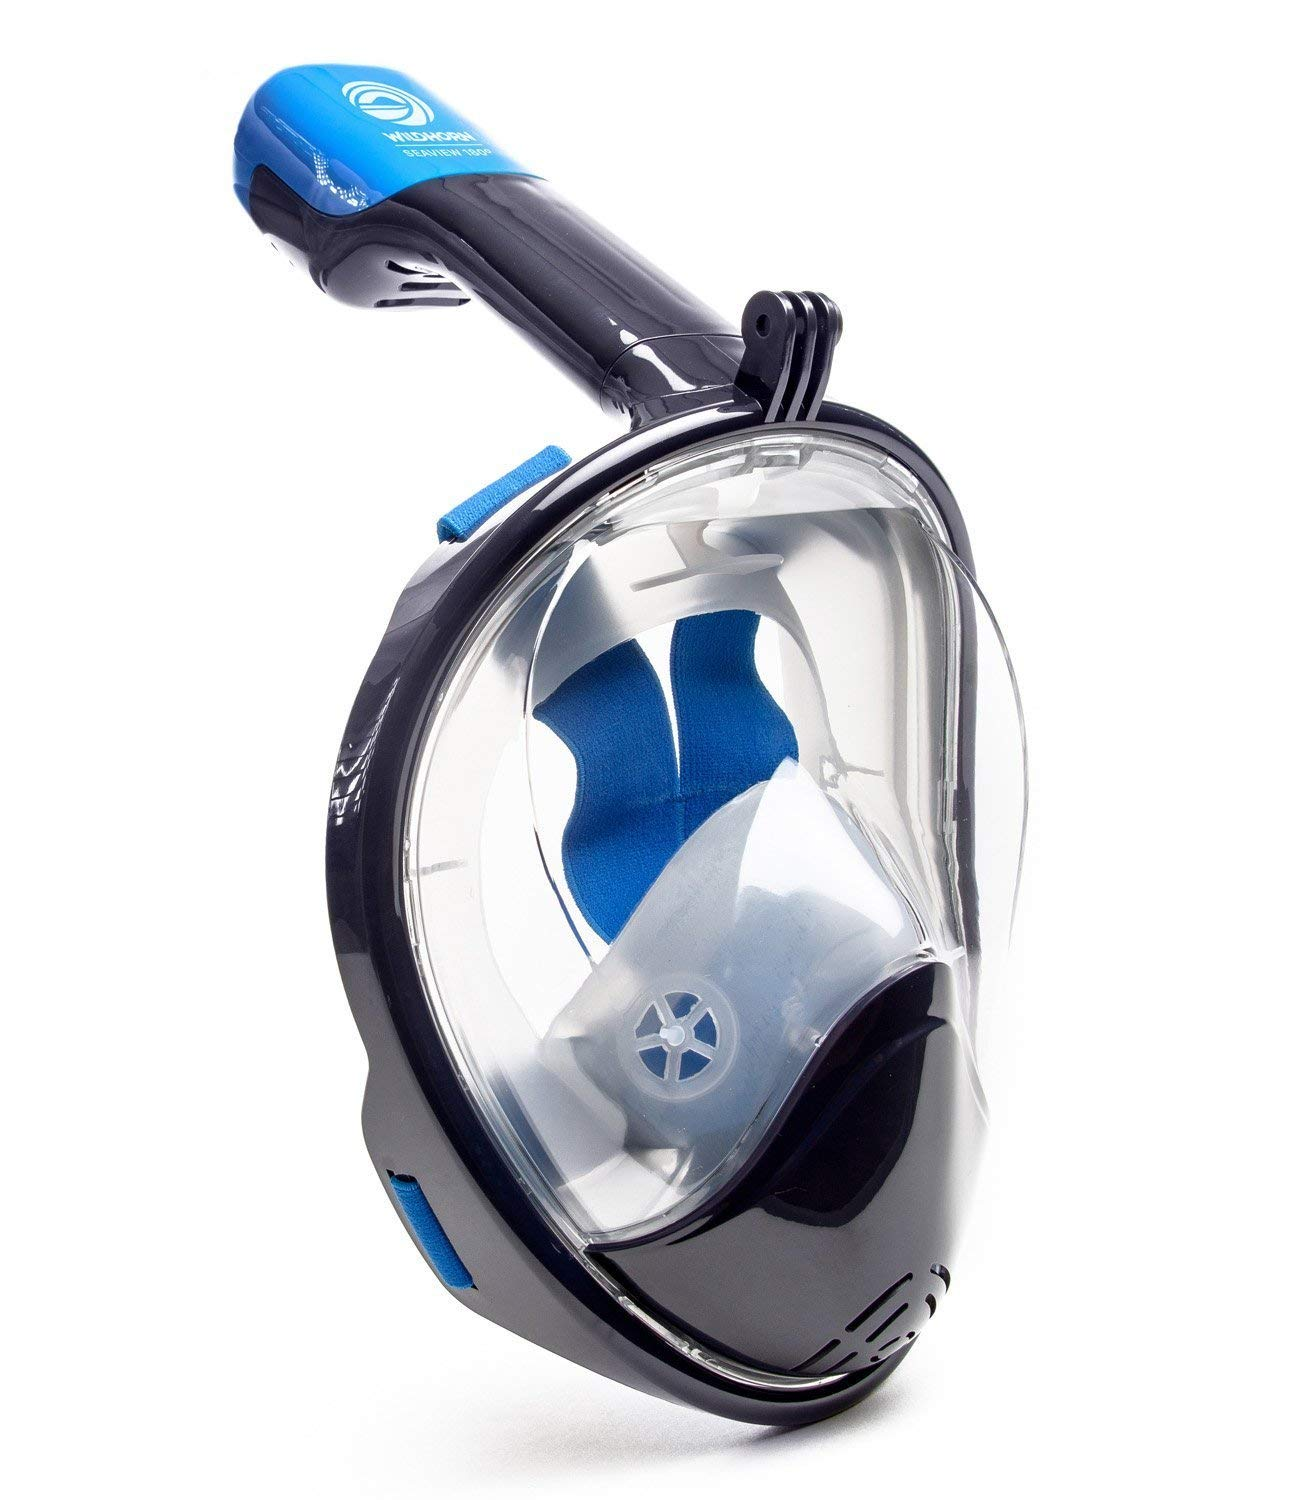 3. WildHorn Outfitters Seaview 180˚ Snorkel Mask